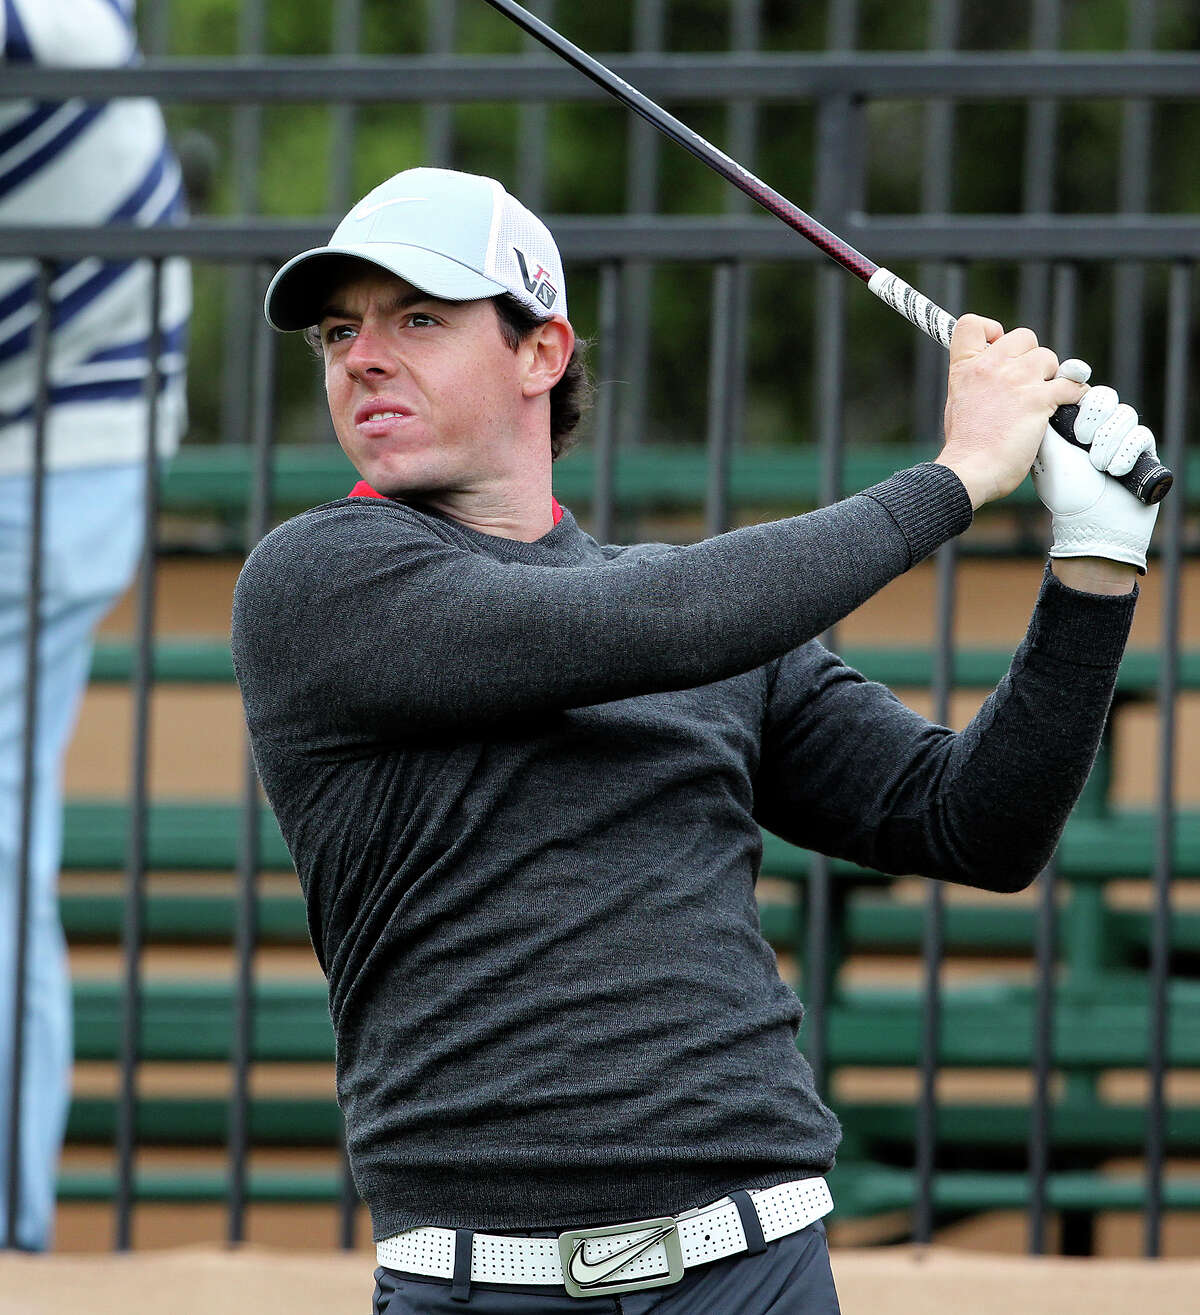 Rory McIlroy tees off on the tenth hole as he plays in the pro am tournament at the Valero Texas Open on April 3, 2013.